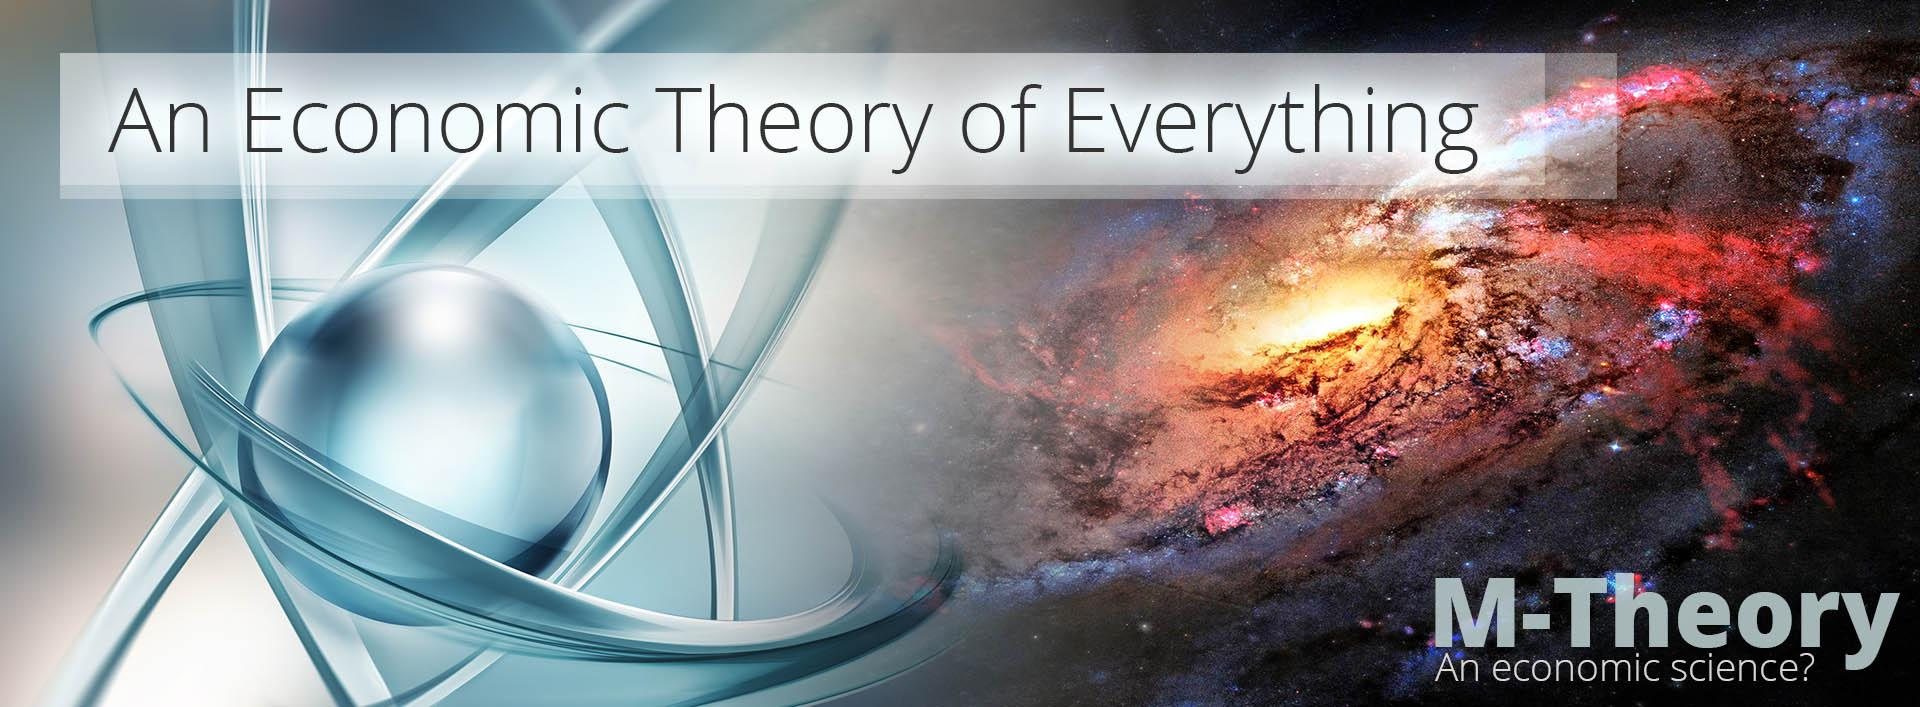 An Economic Theory of Everything